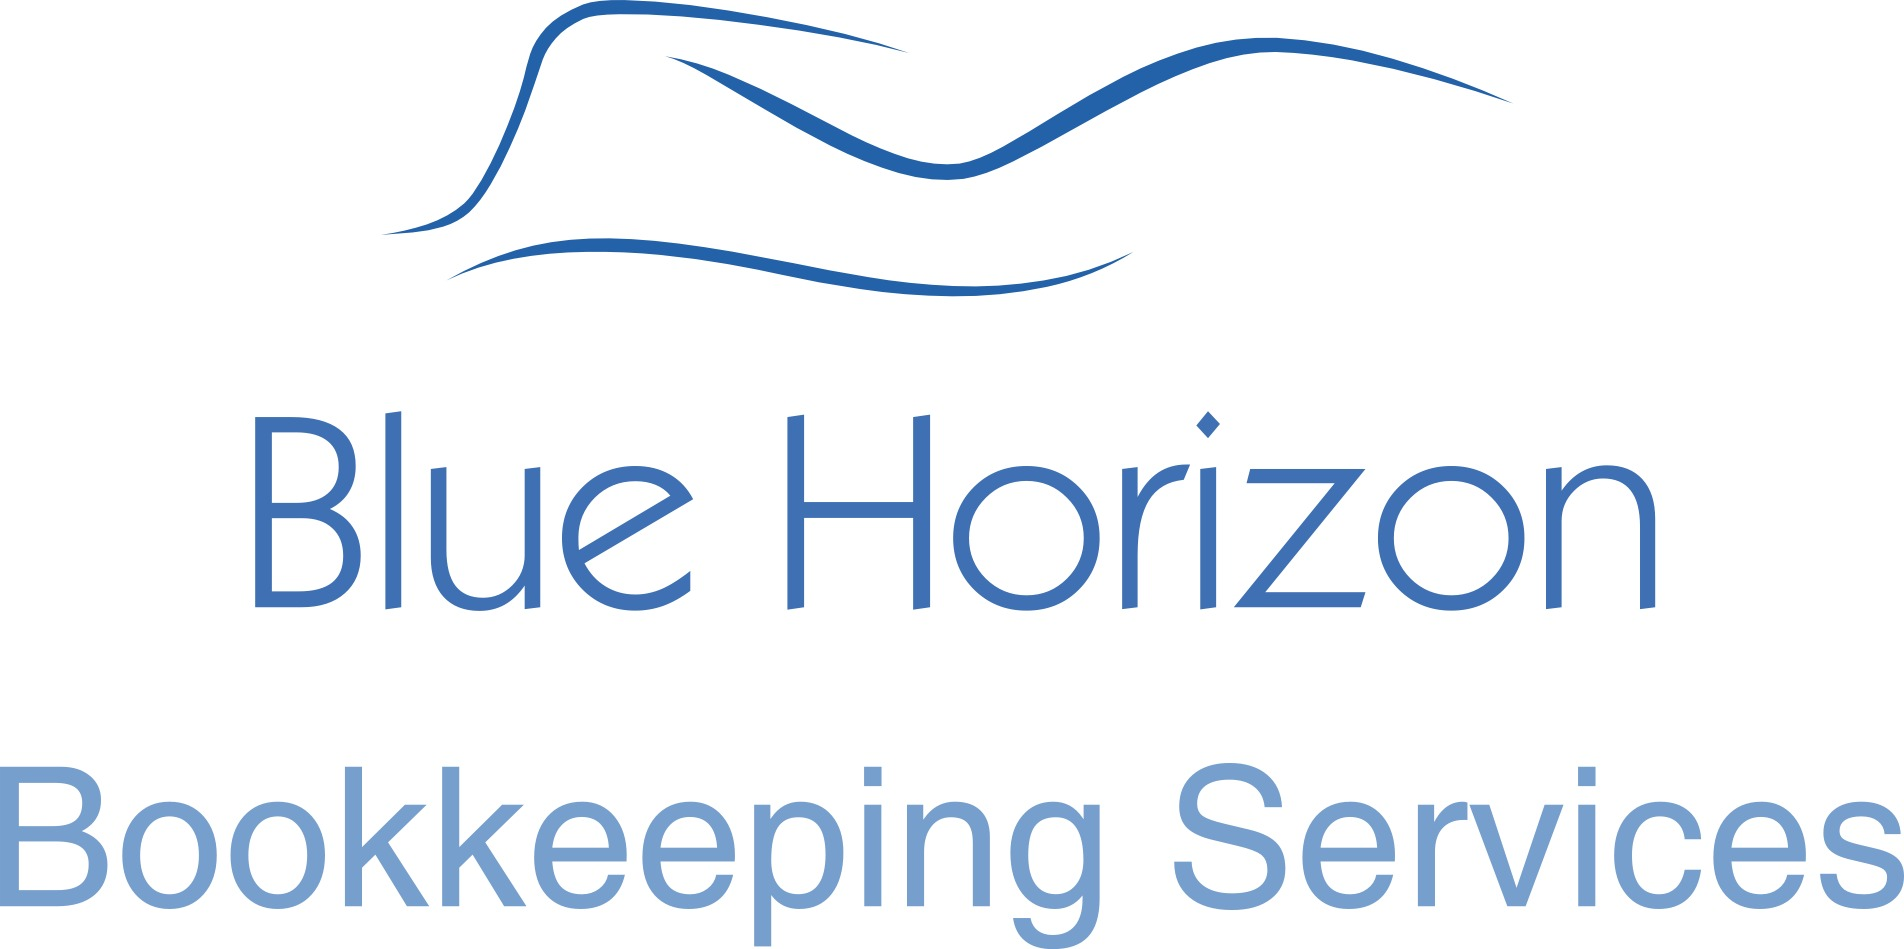 Blue Horizon Bookkeeping Services